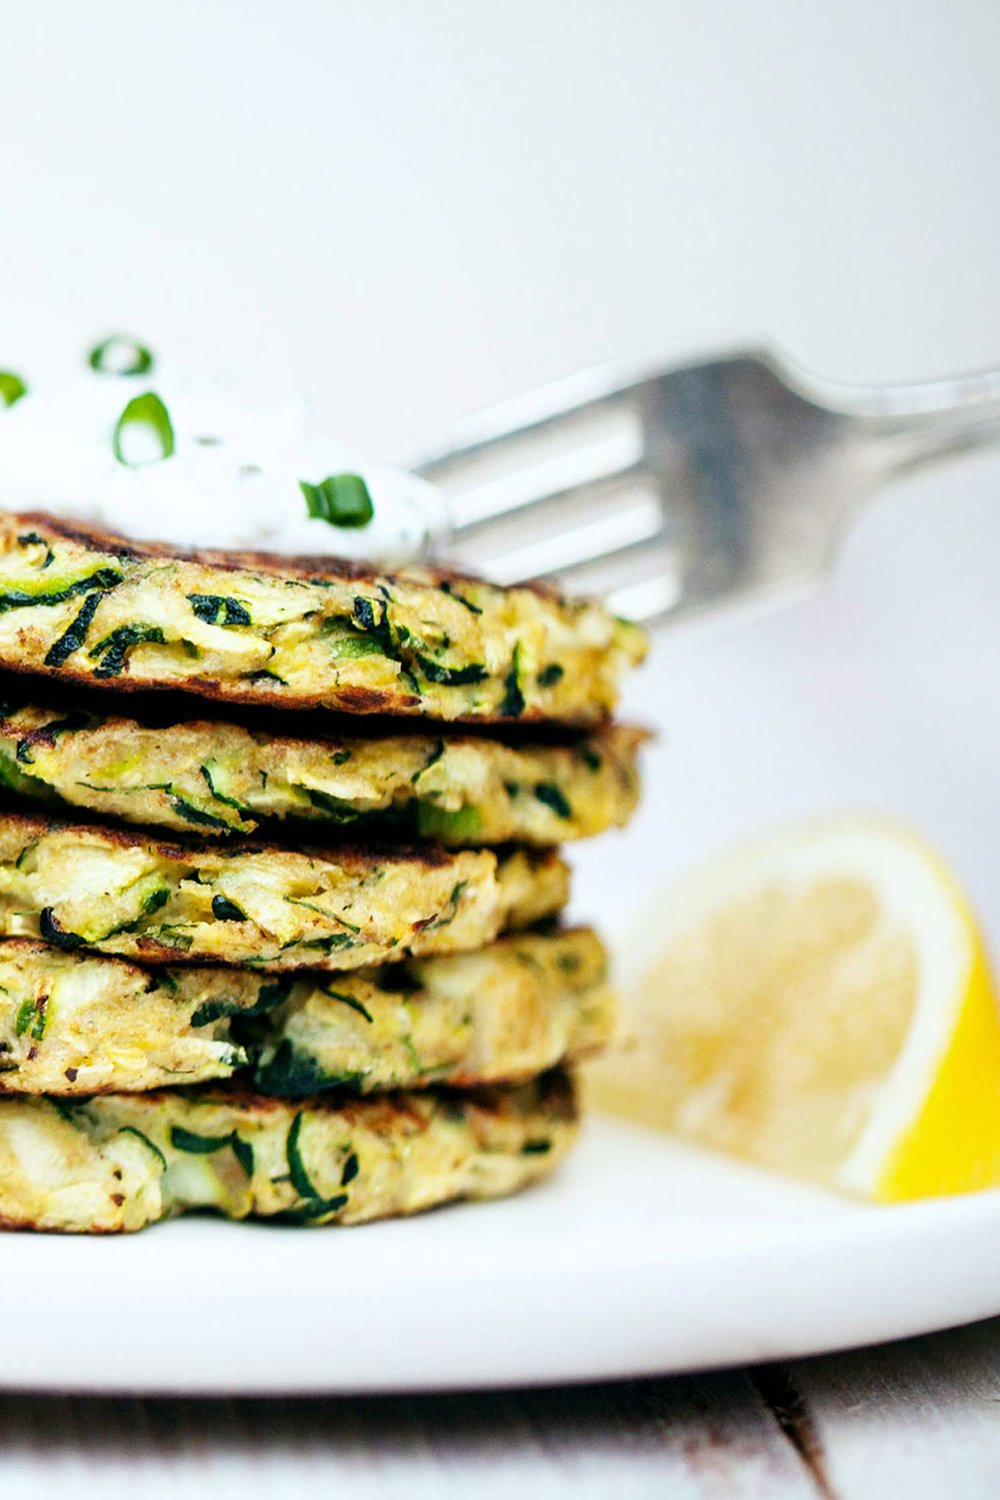 Zucchini-Fritters-with-Lemon-Dill-Yogurt-Sauce-Evergreen-Kitchen-1.jpg